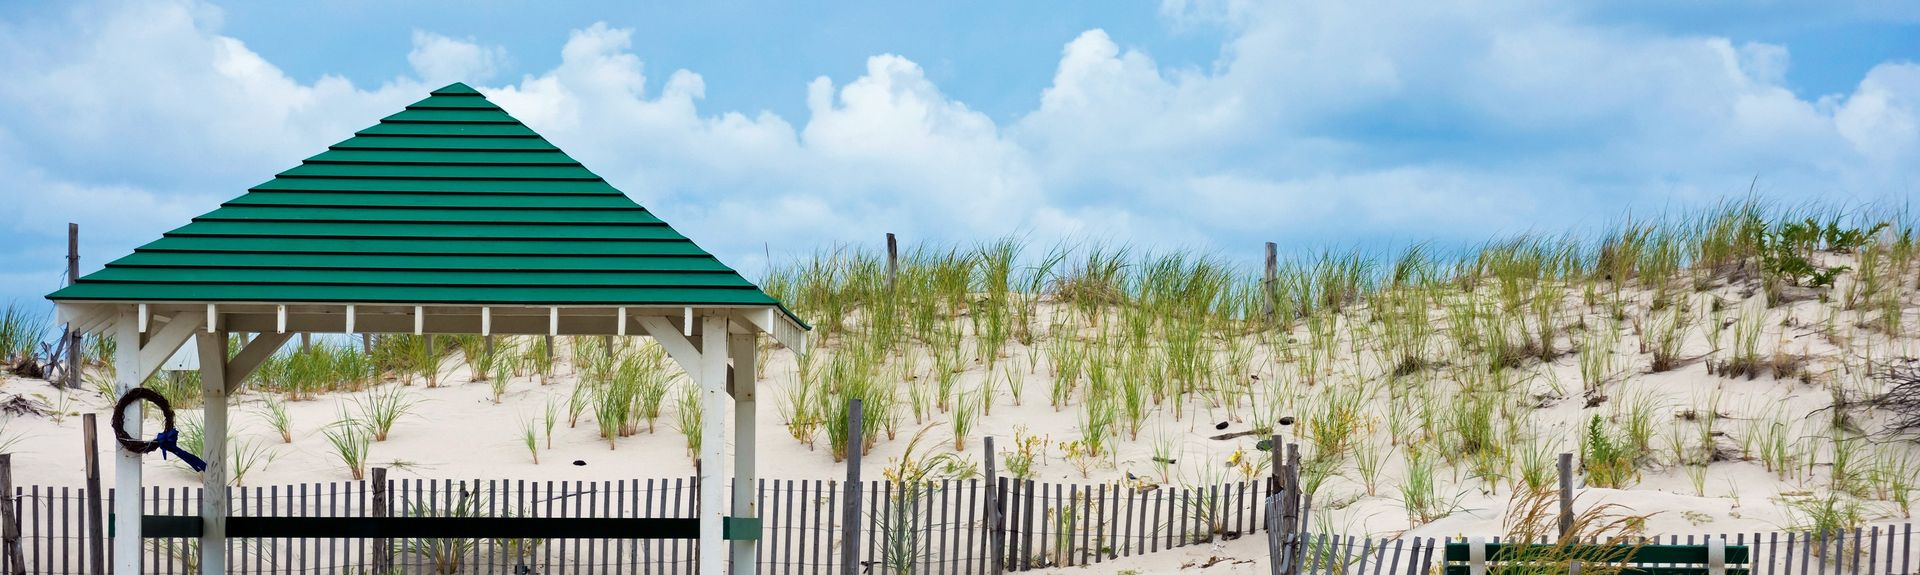 Seaside Park, New Jersey, United States of America